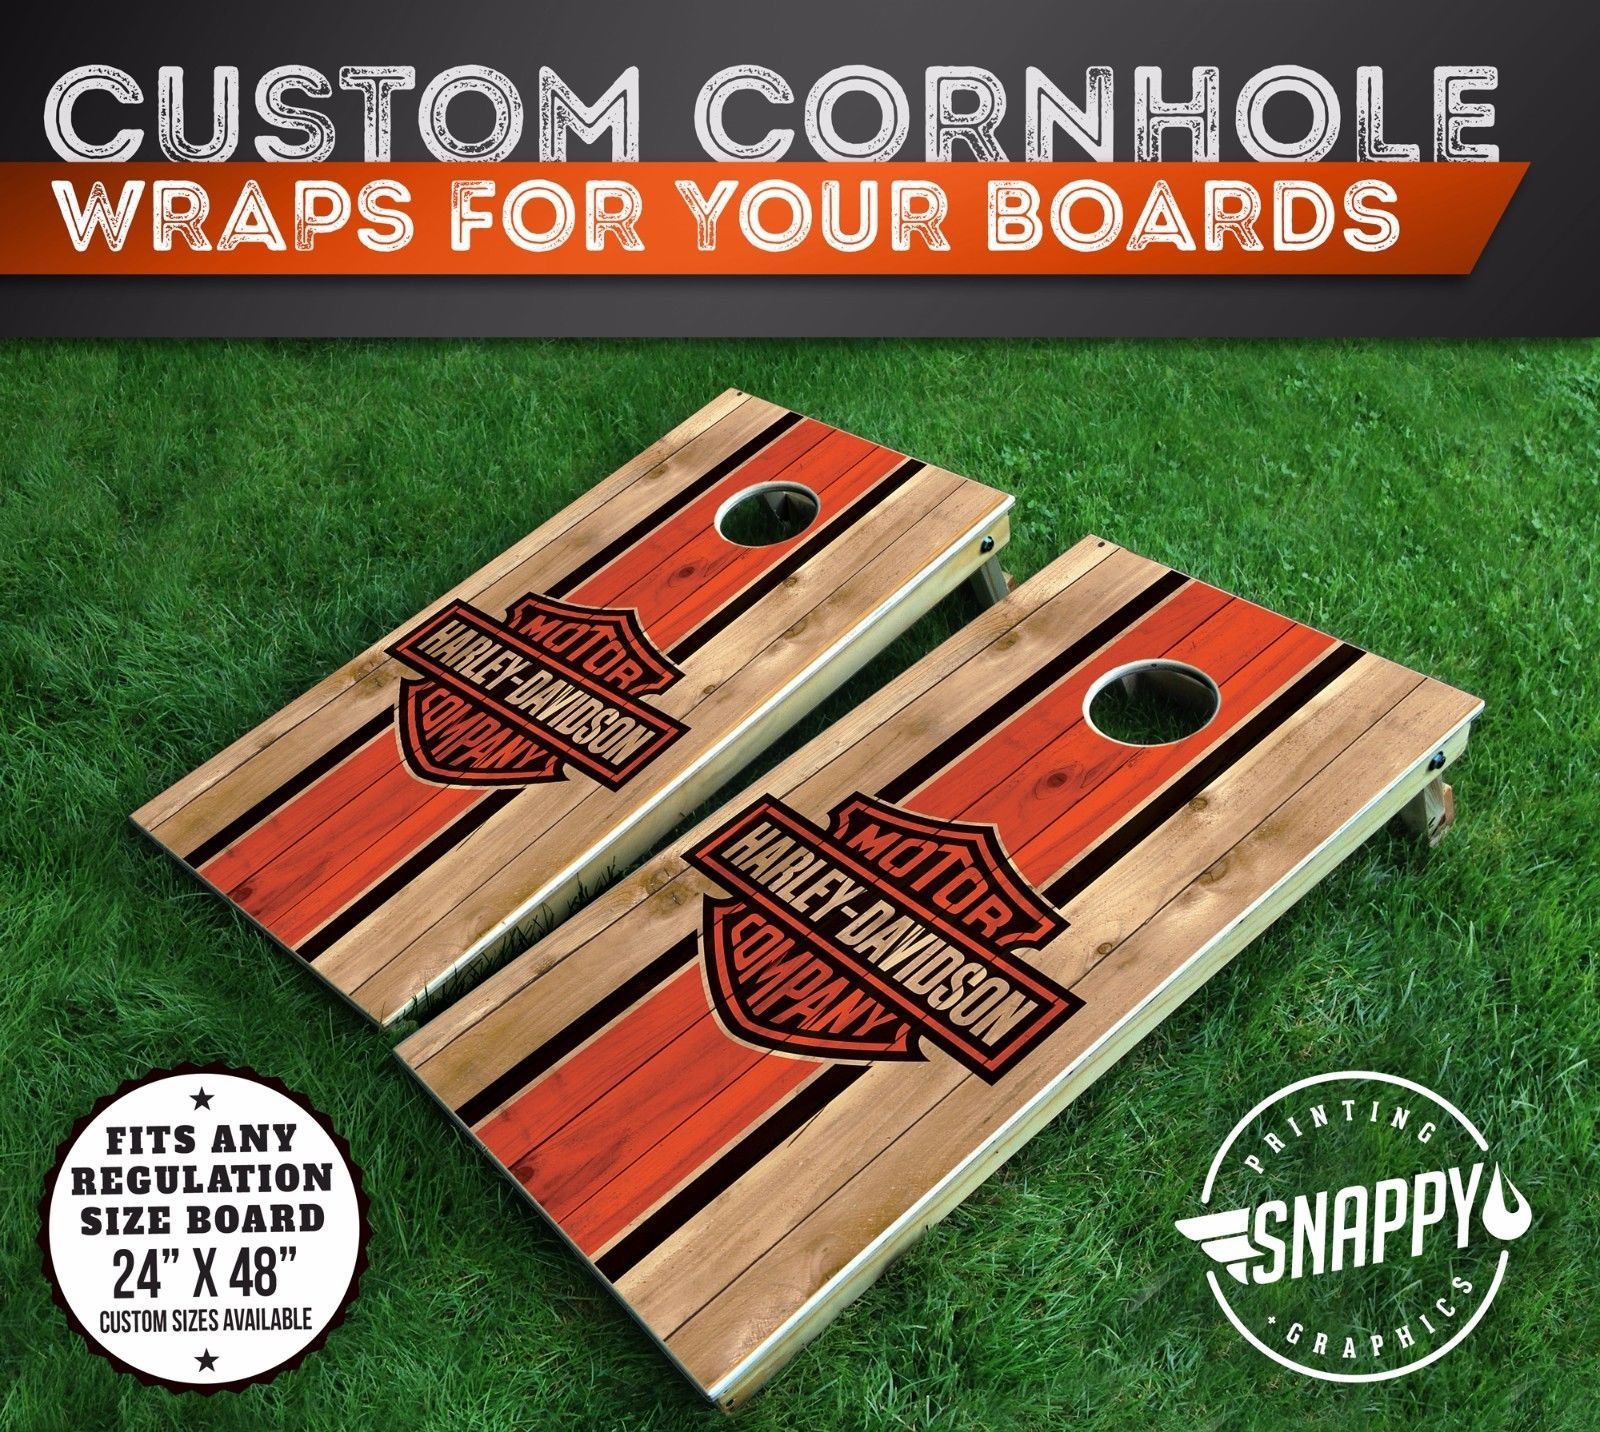 cornhole bag toss harley davidson faux wood cornhole decals bag toss board - Cornhole Board Wraps